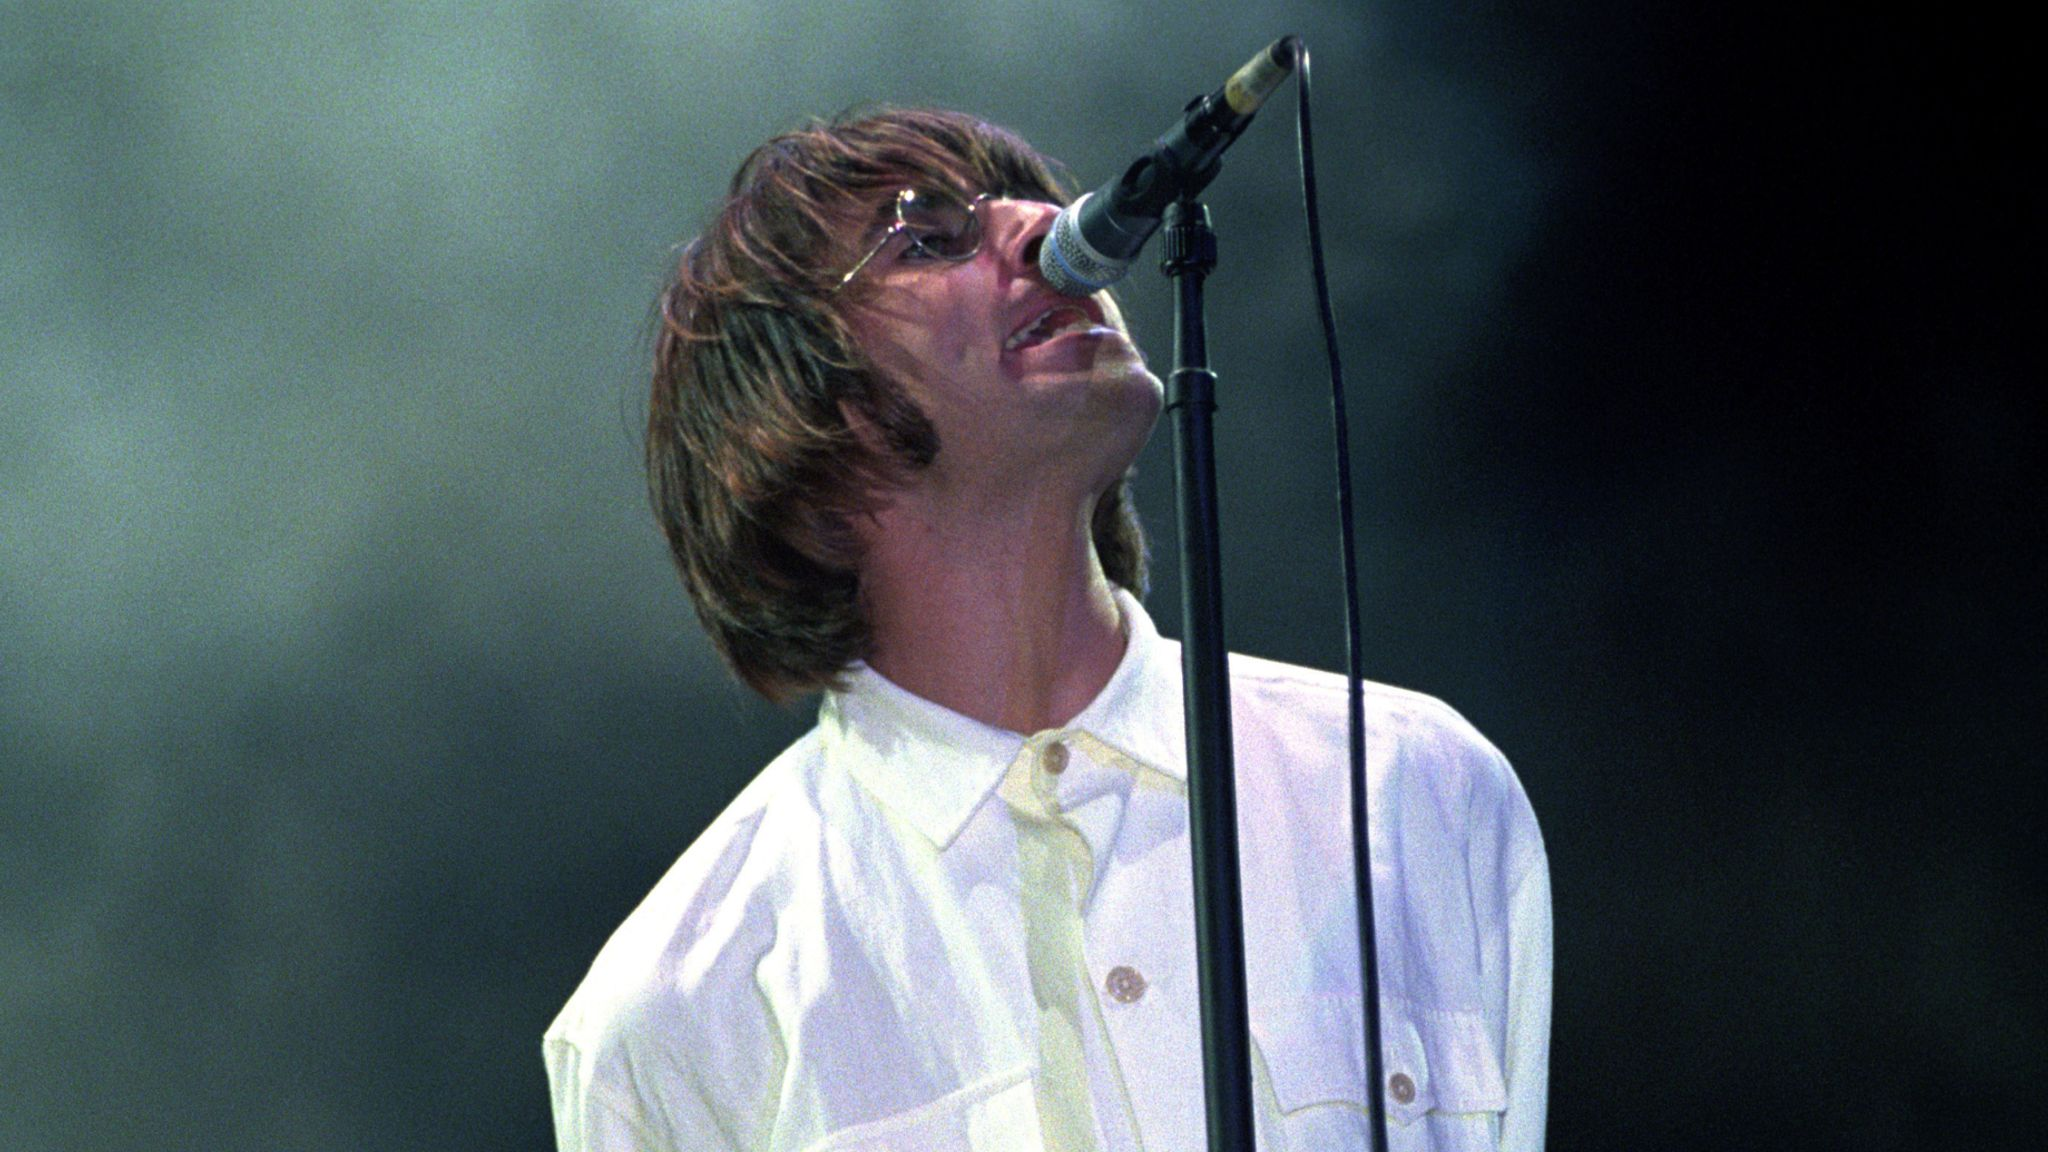 Watch the official trailer for liam and noel gallagher's 'oasis knebworth 1996' documentary: Liam Gallagher announces Knebworth show - a return to the ...